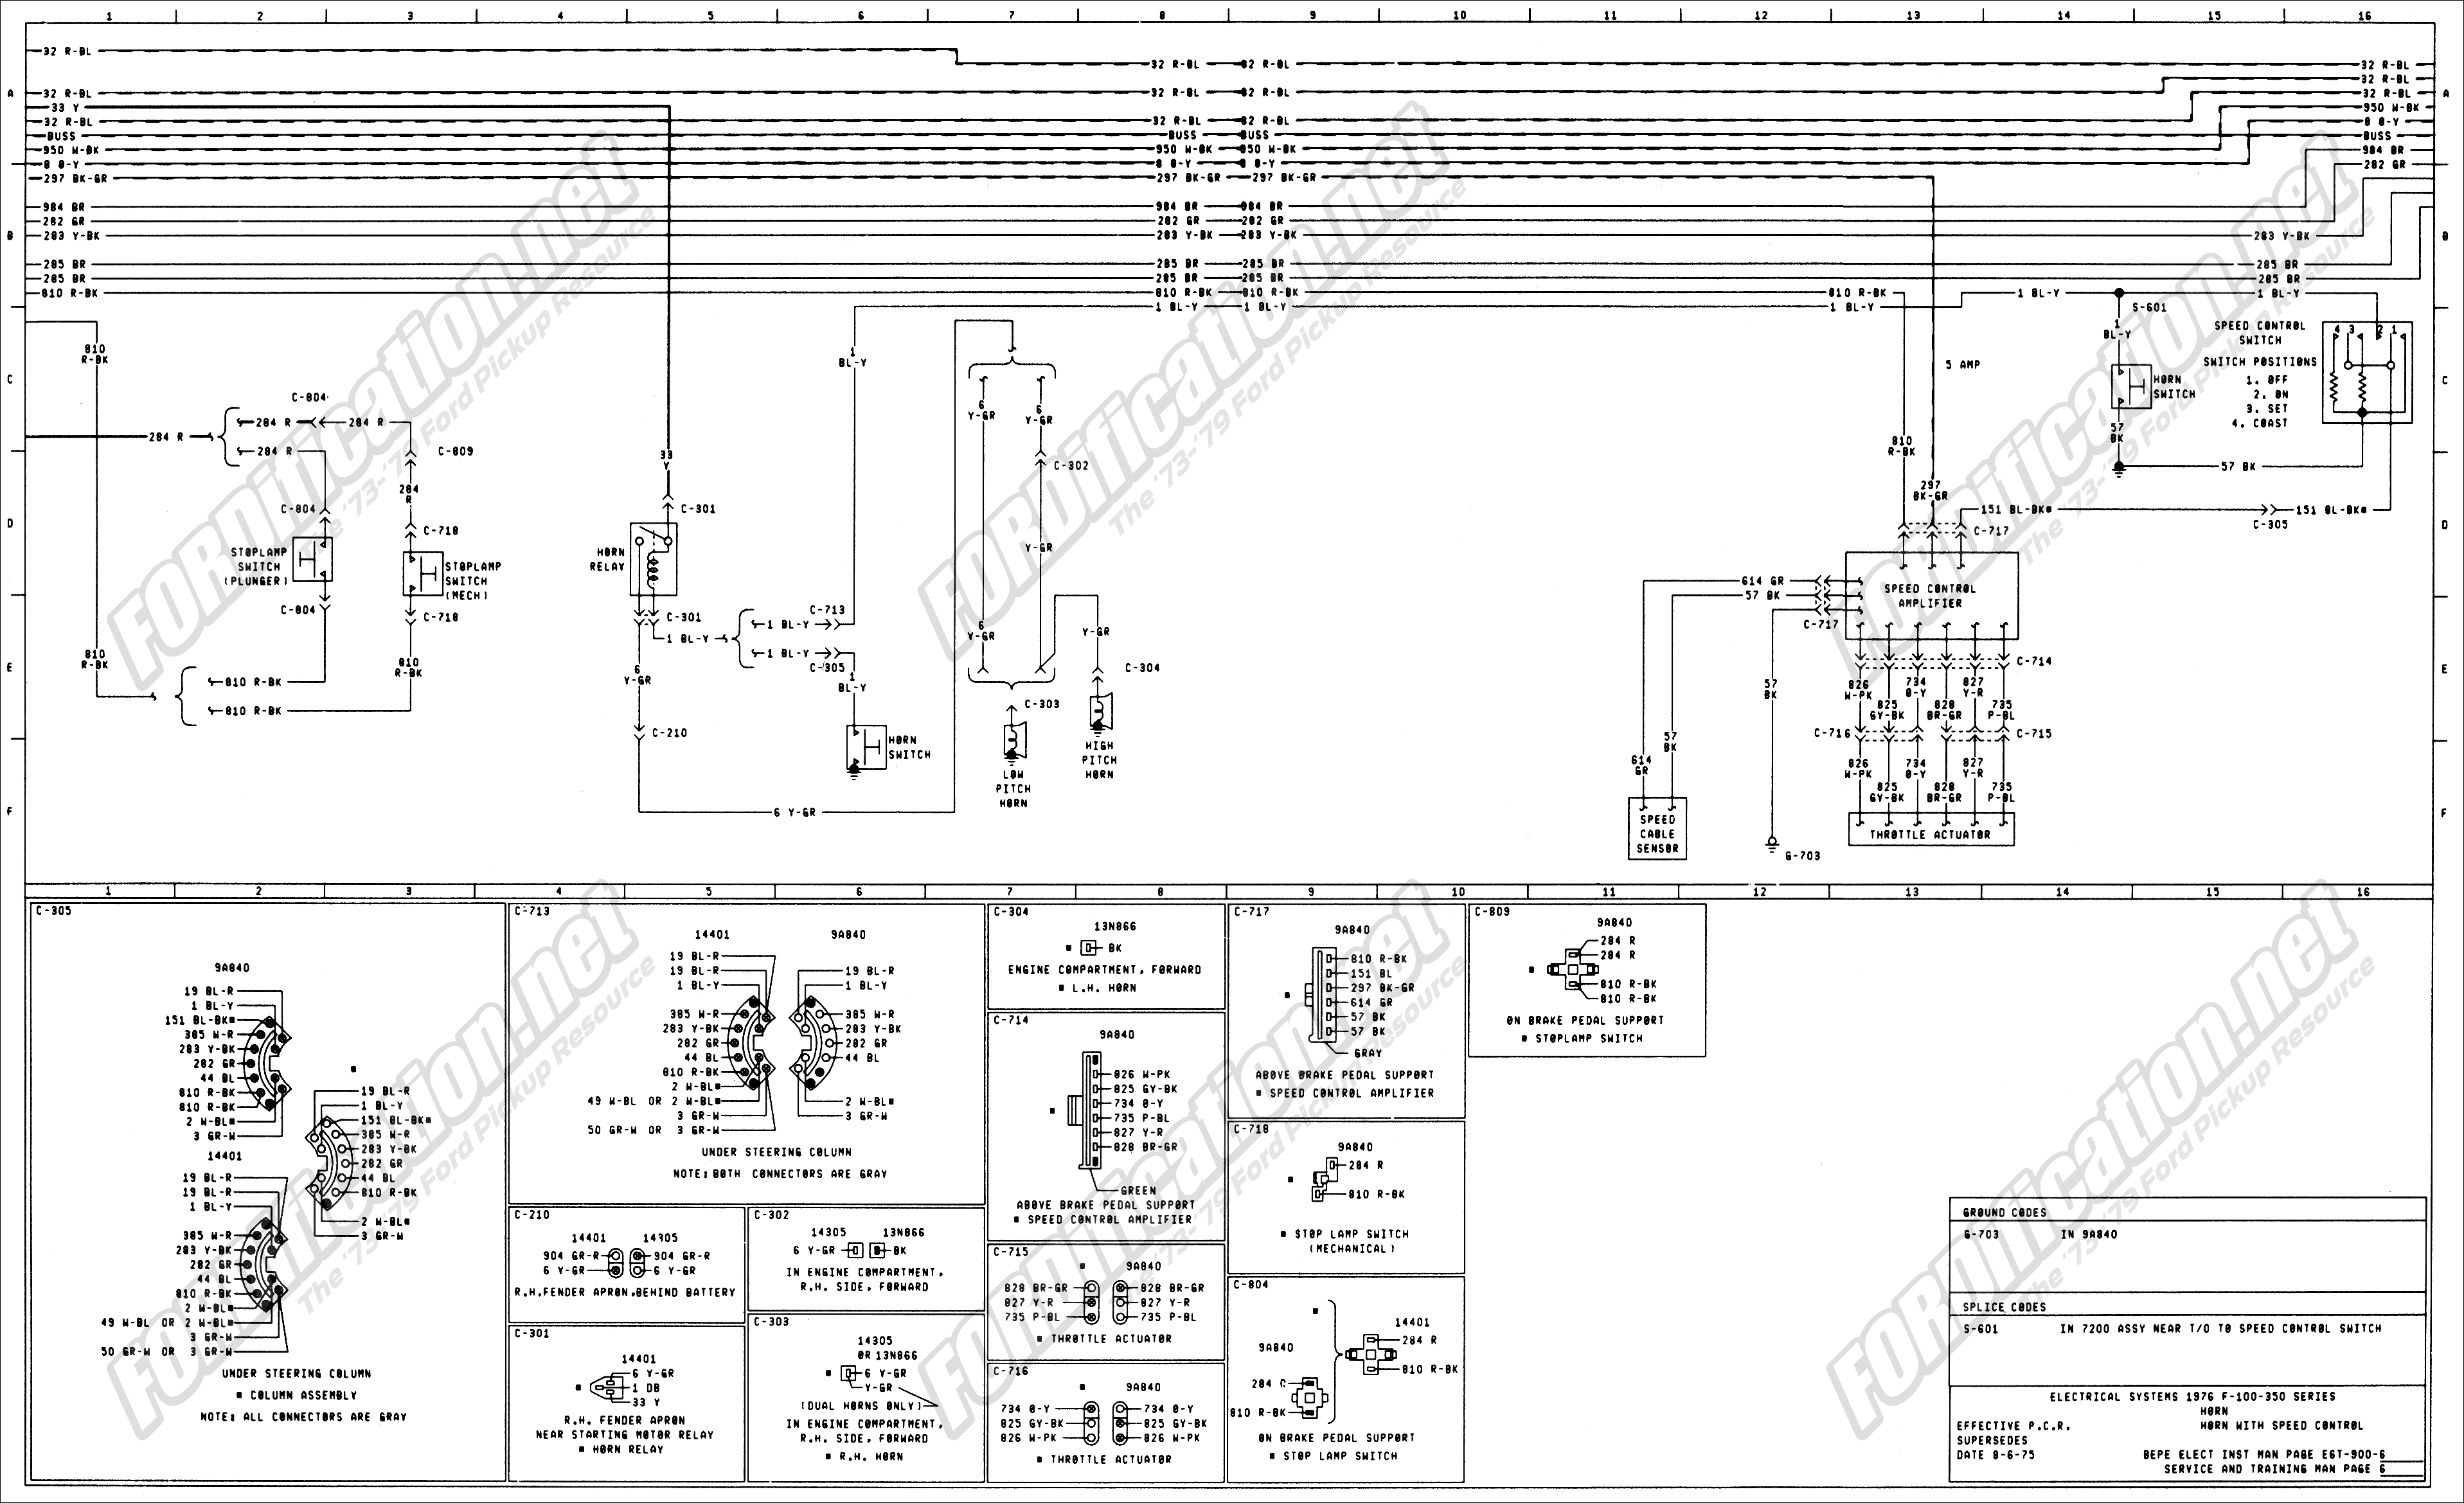 Catalog3 moreover 2002 Chevy Impala Starter Wiring Diagram together with 2282494 Need Help With 67 Wiper Switch Motor Wiring further Showthread as well Citro C3 ABn H Van. on 1969 gmc wiring diagram